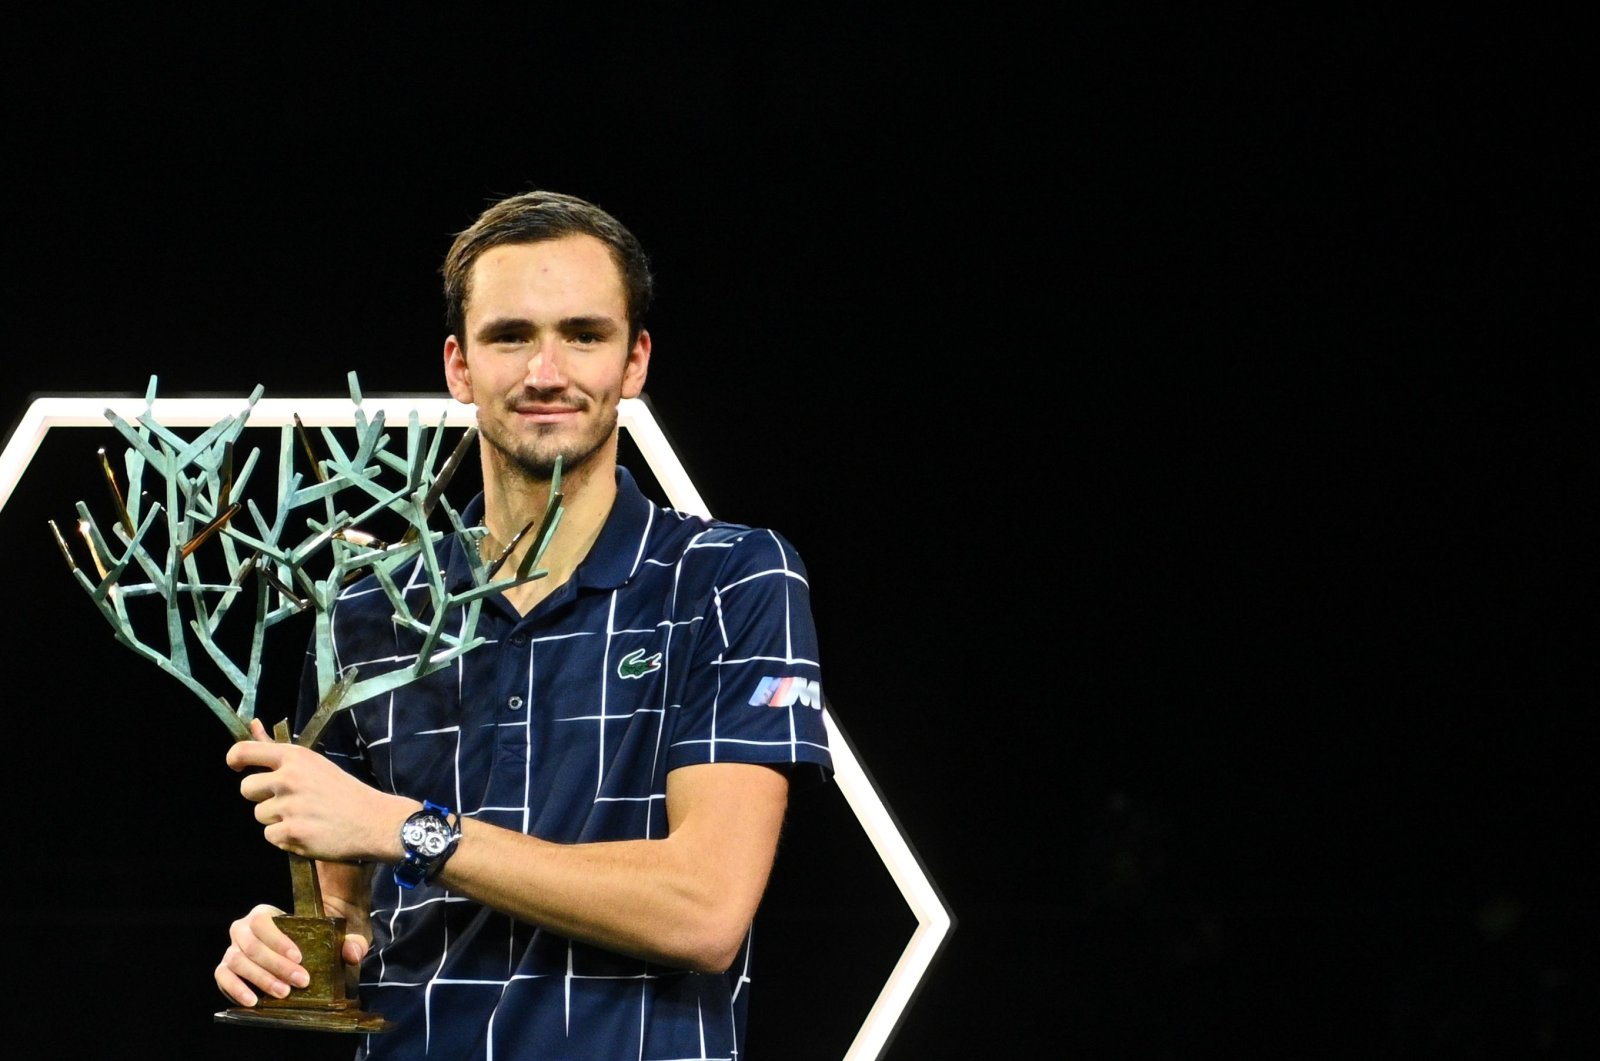 Daniil Medvedev poses with the Paris Masters trophy after winning the tournament, in Paris, France, Nov. 8, 2020. (AFP Photo)